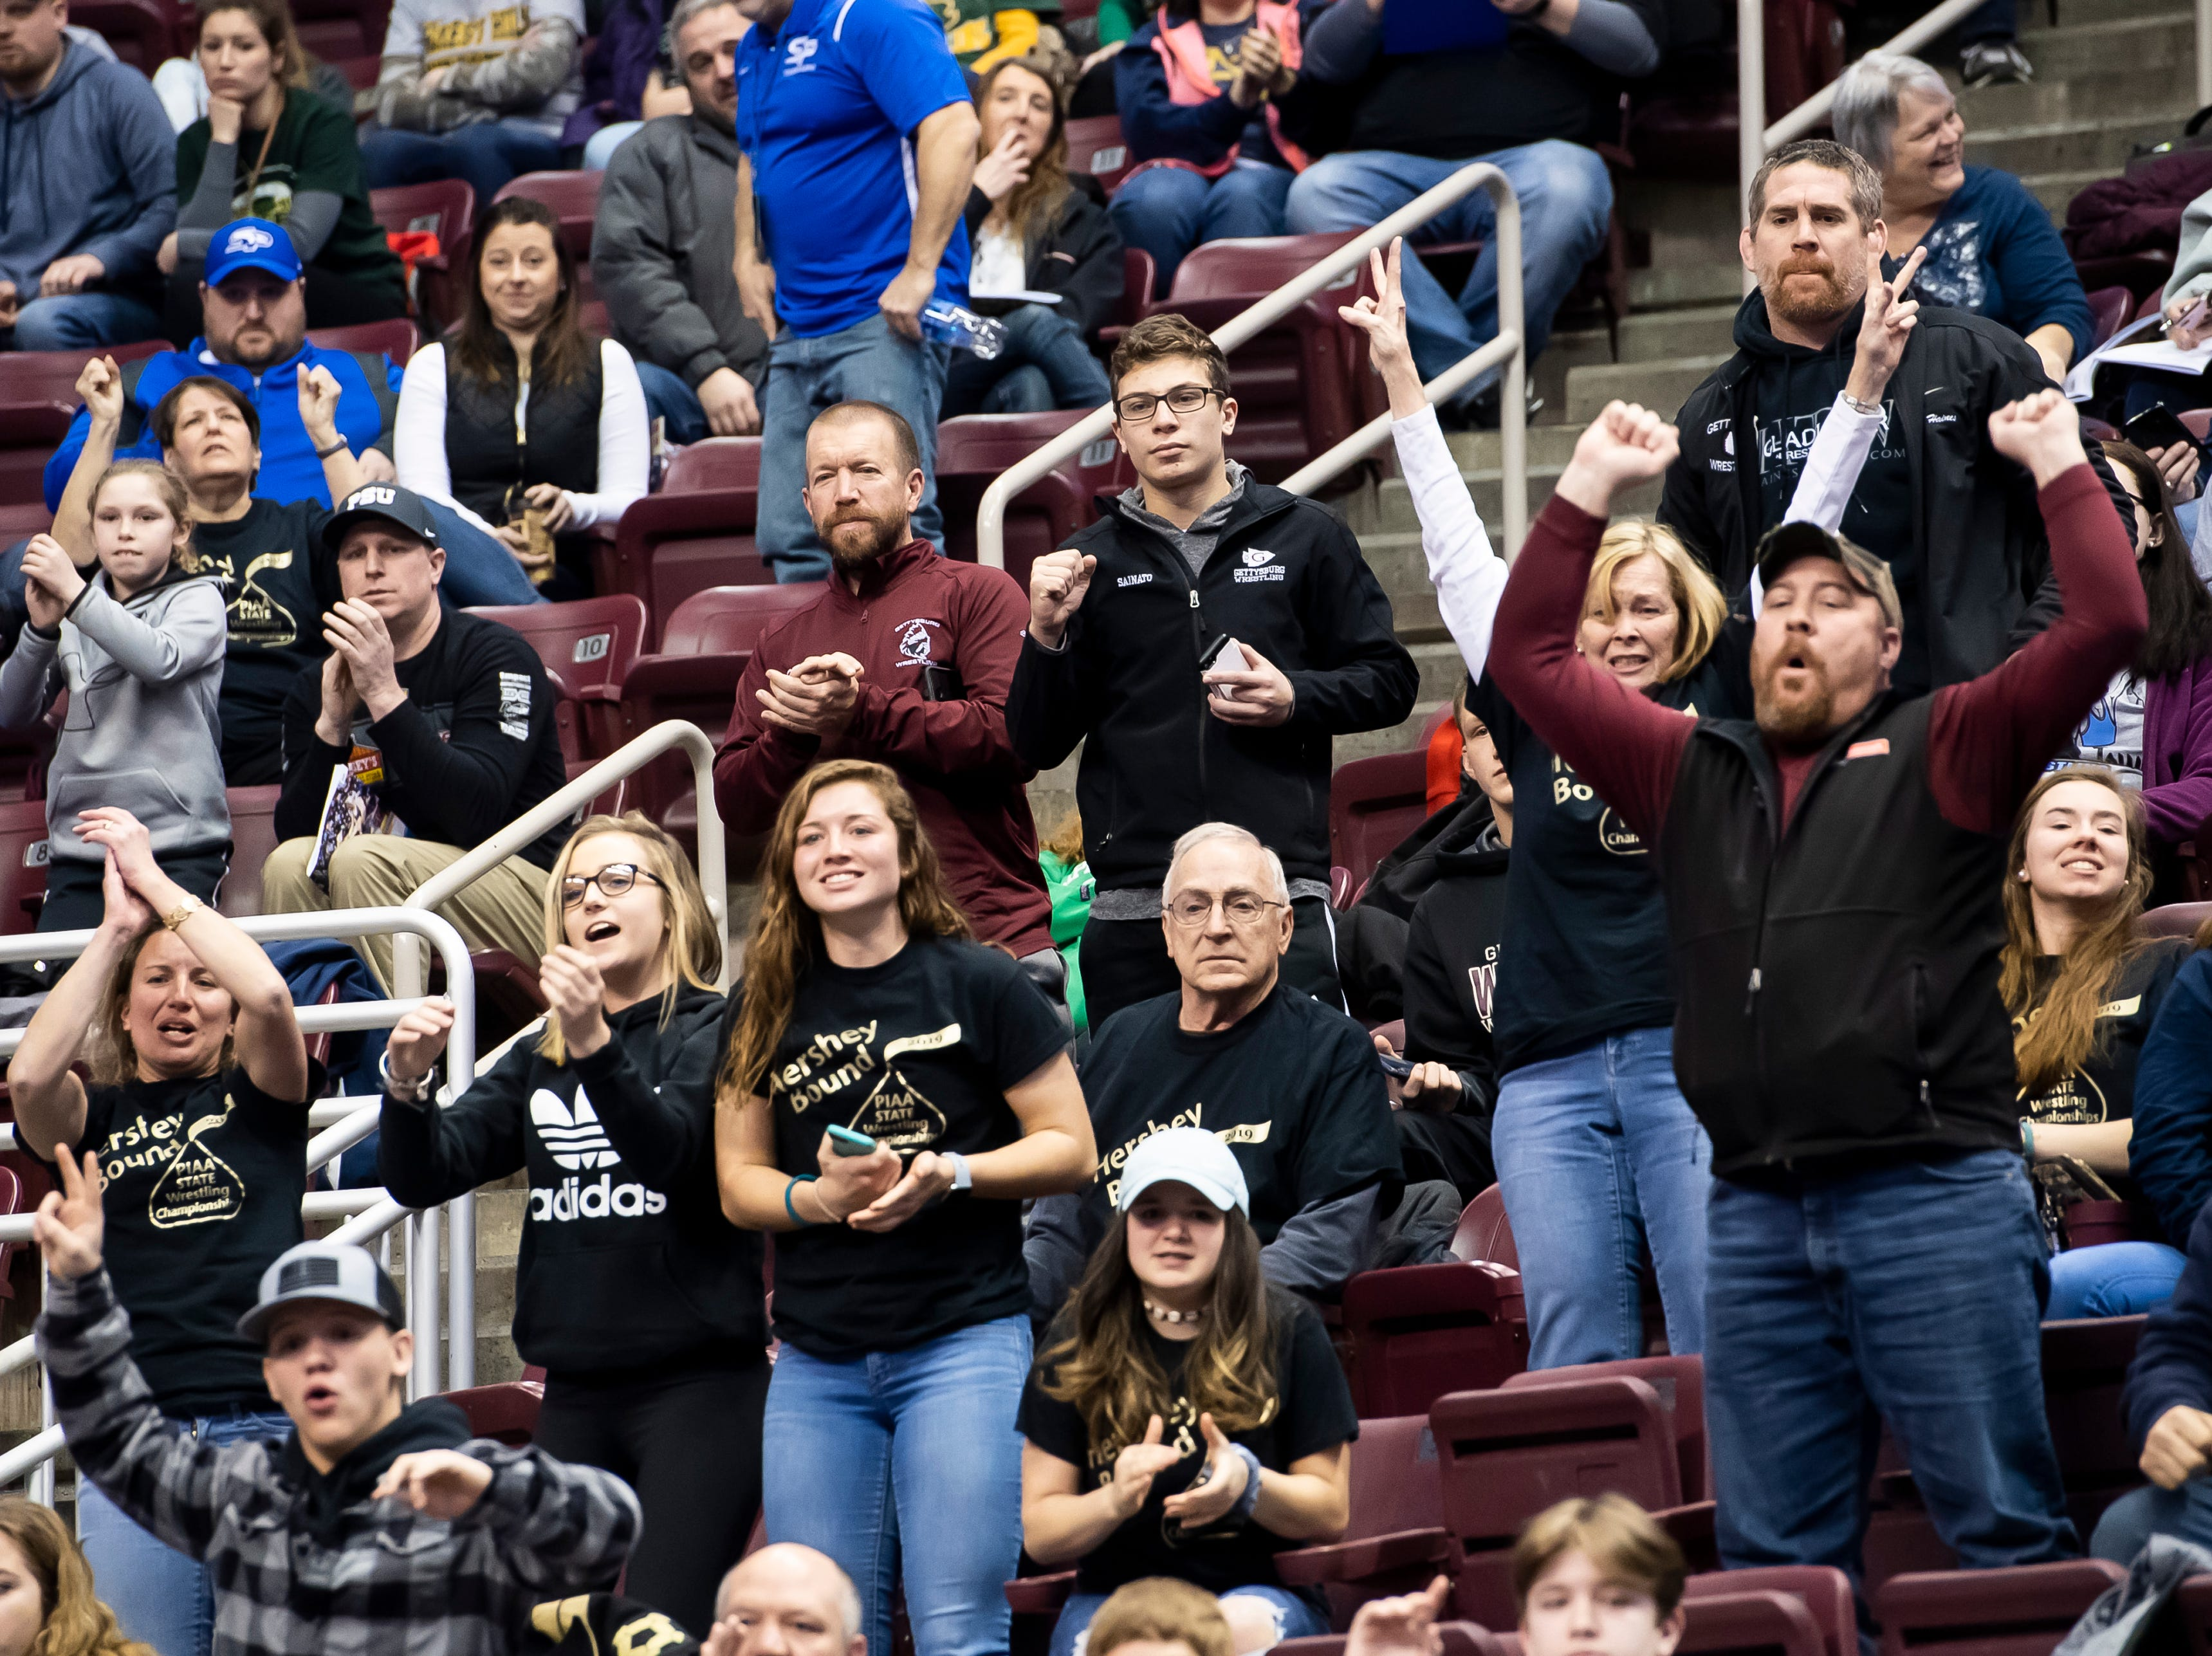 Biglerville fans cheer as Eli Tuckey comes from behind to defeat Newport's Dorian Gonzalez during a 132-pound second round consolation bout at the Giant Center in Hershey Friday, March 8, 2019. Tuckey won in sudden victory 9-7.